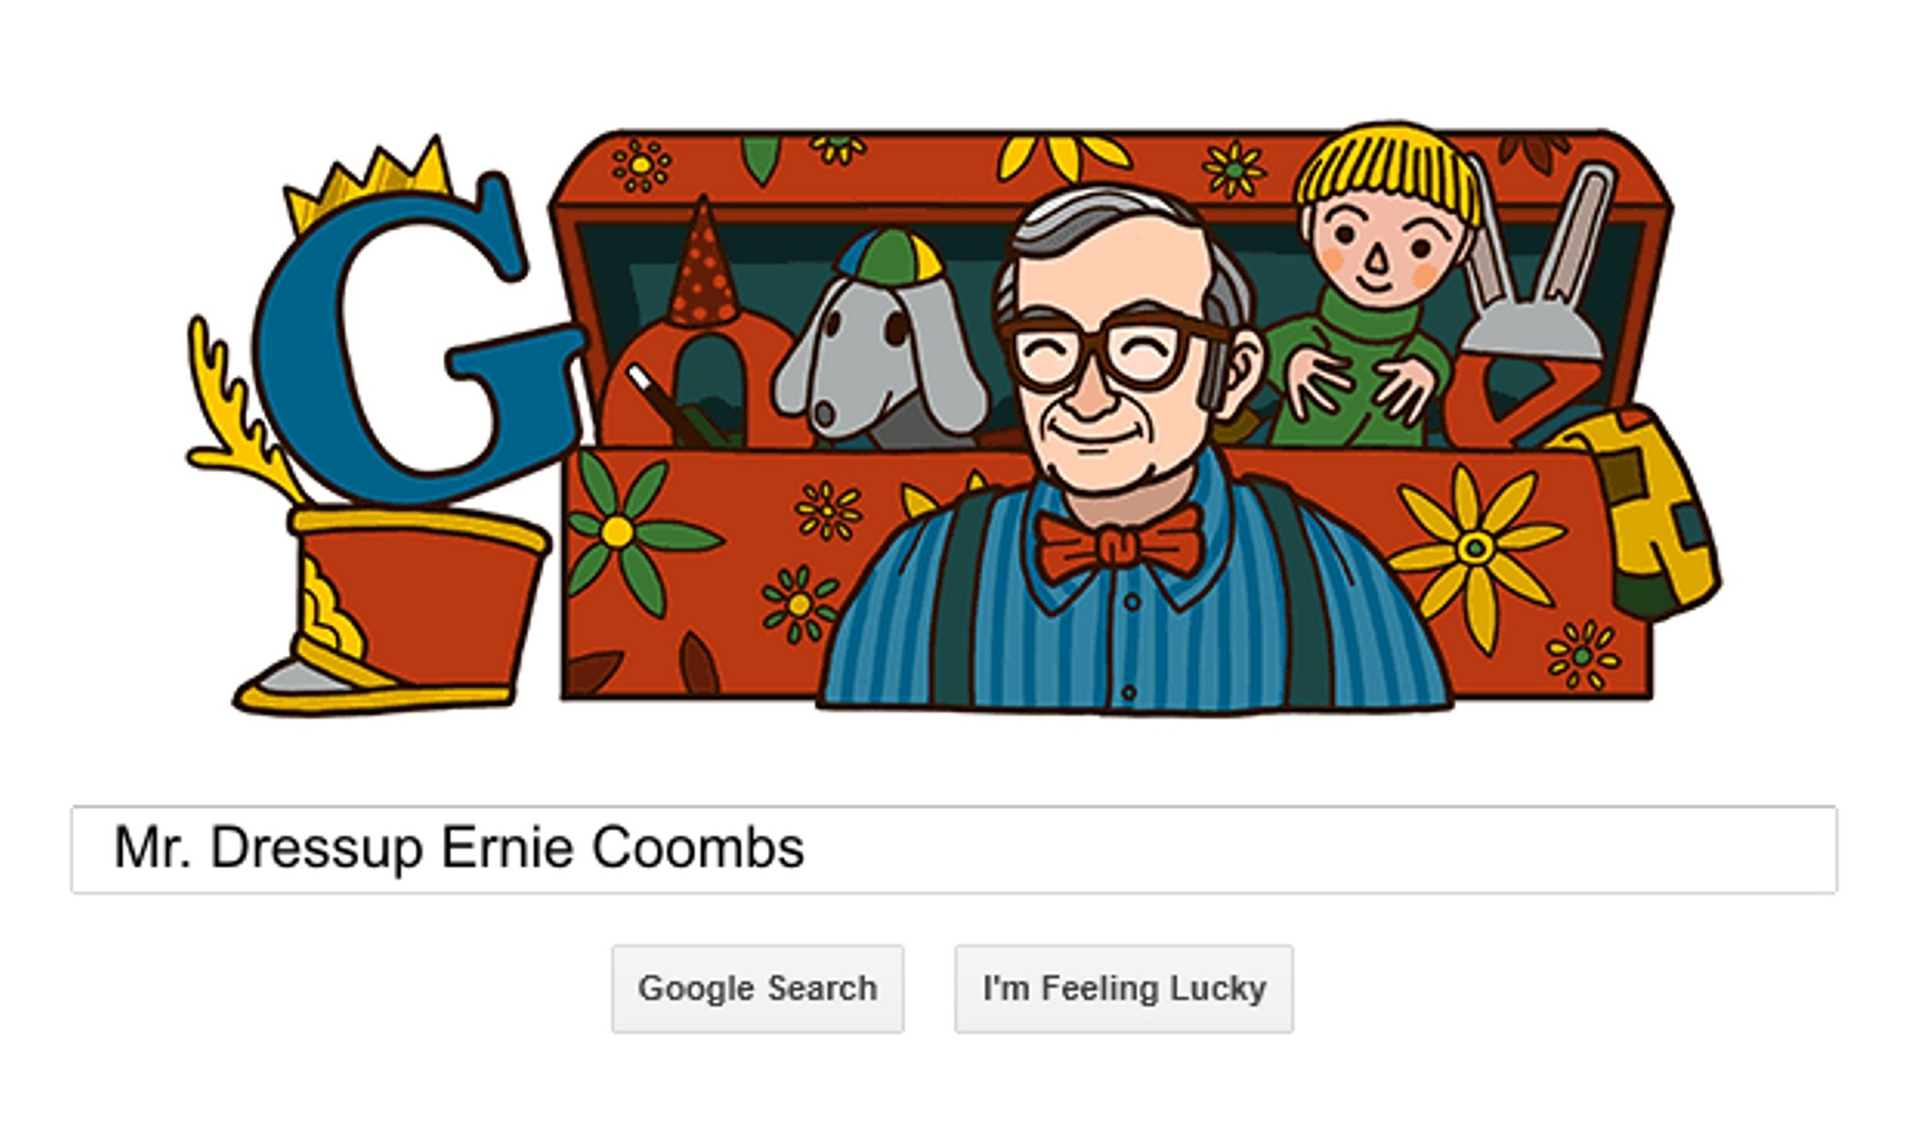 Mr Dressup Ernie Coombs